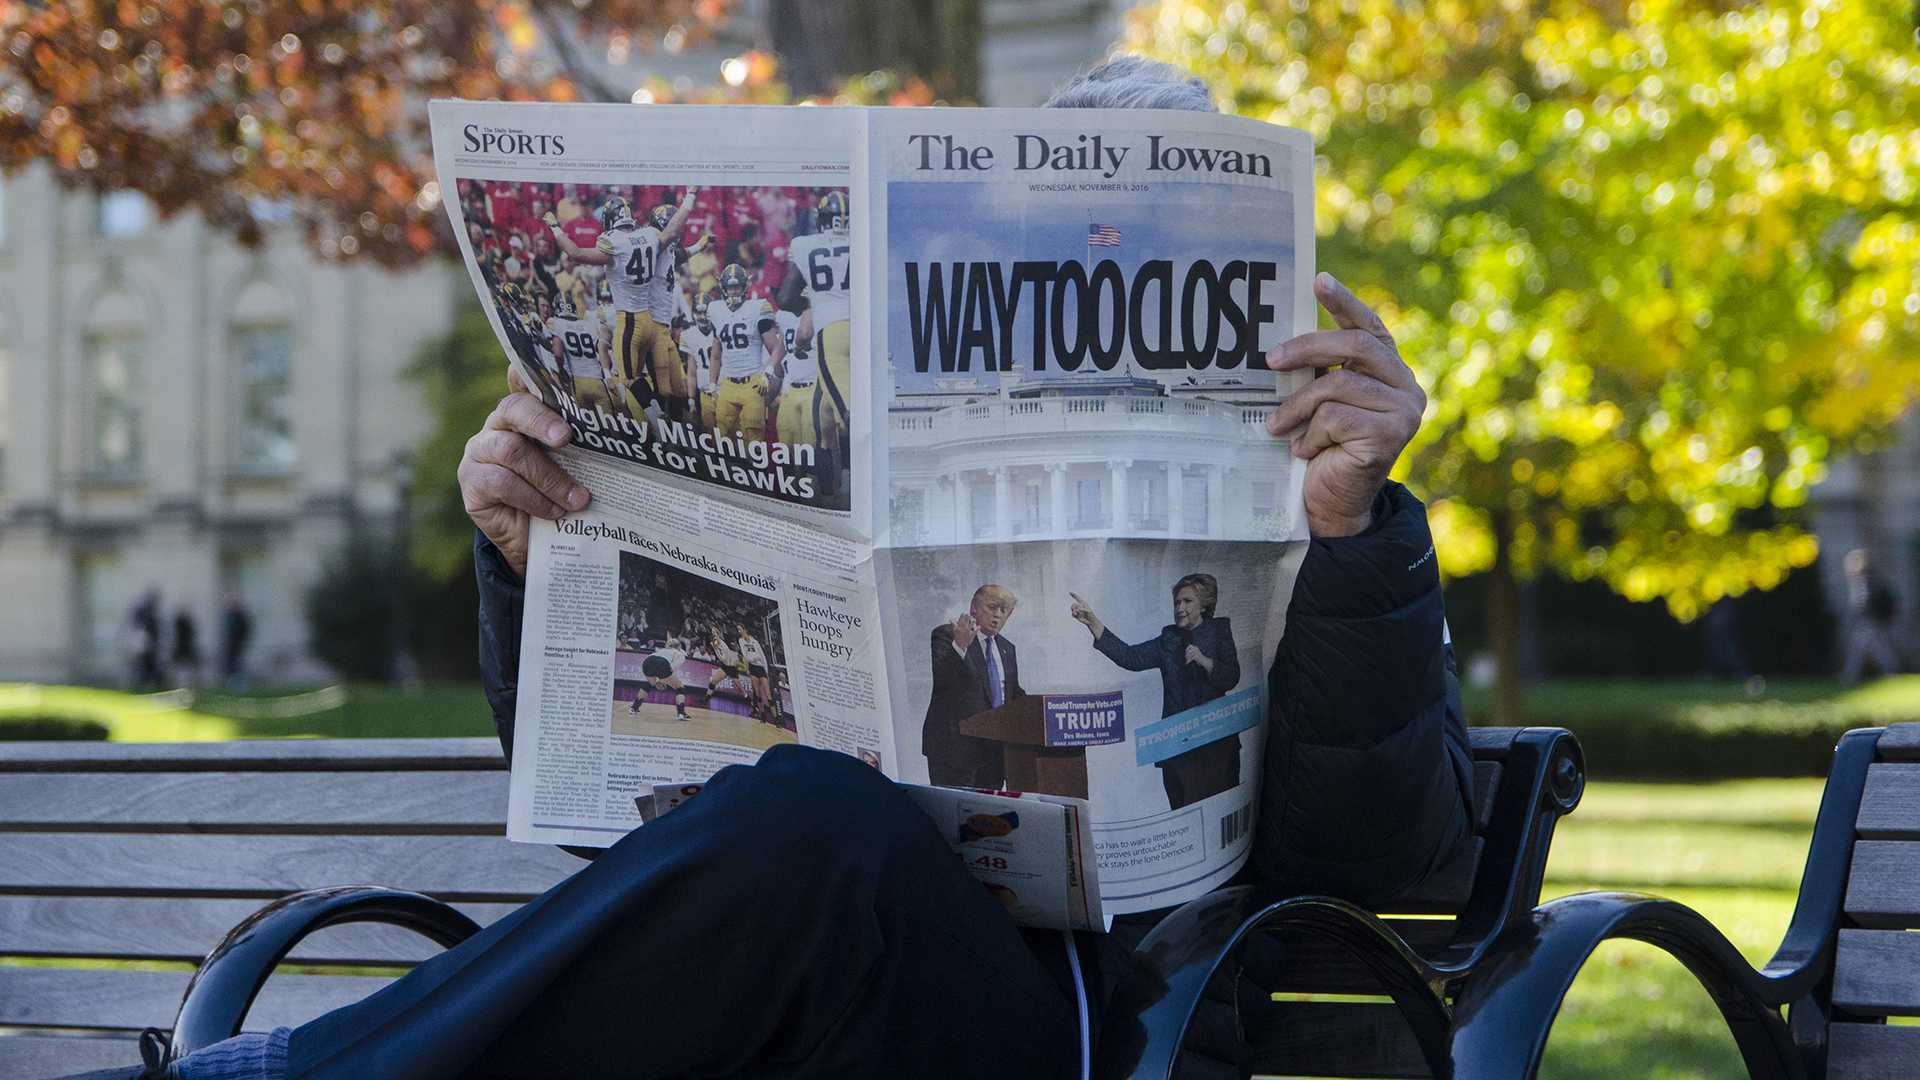 A man reads a paper at a